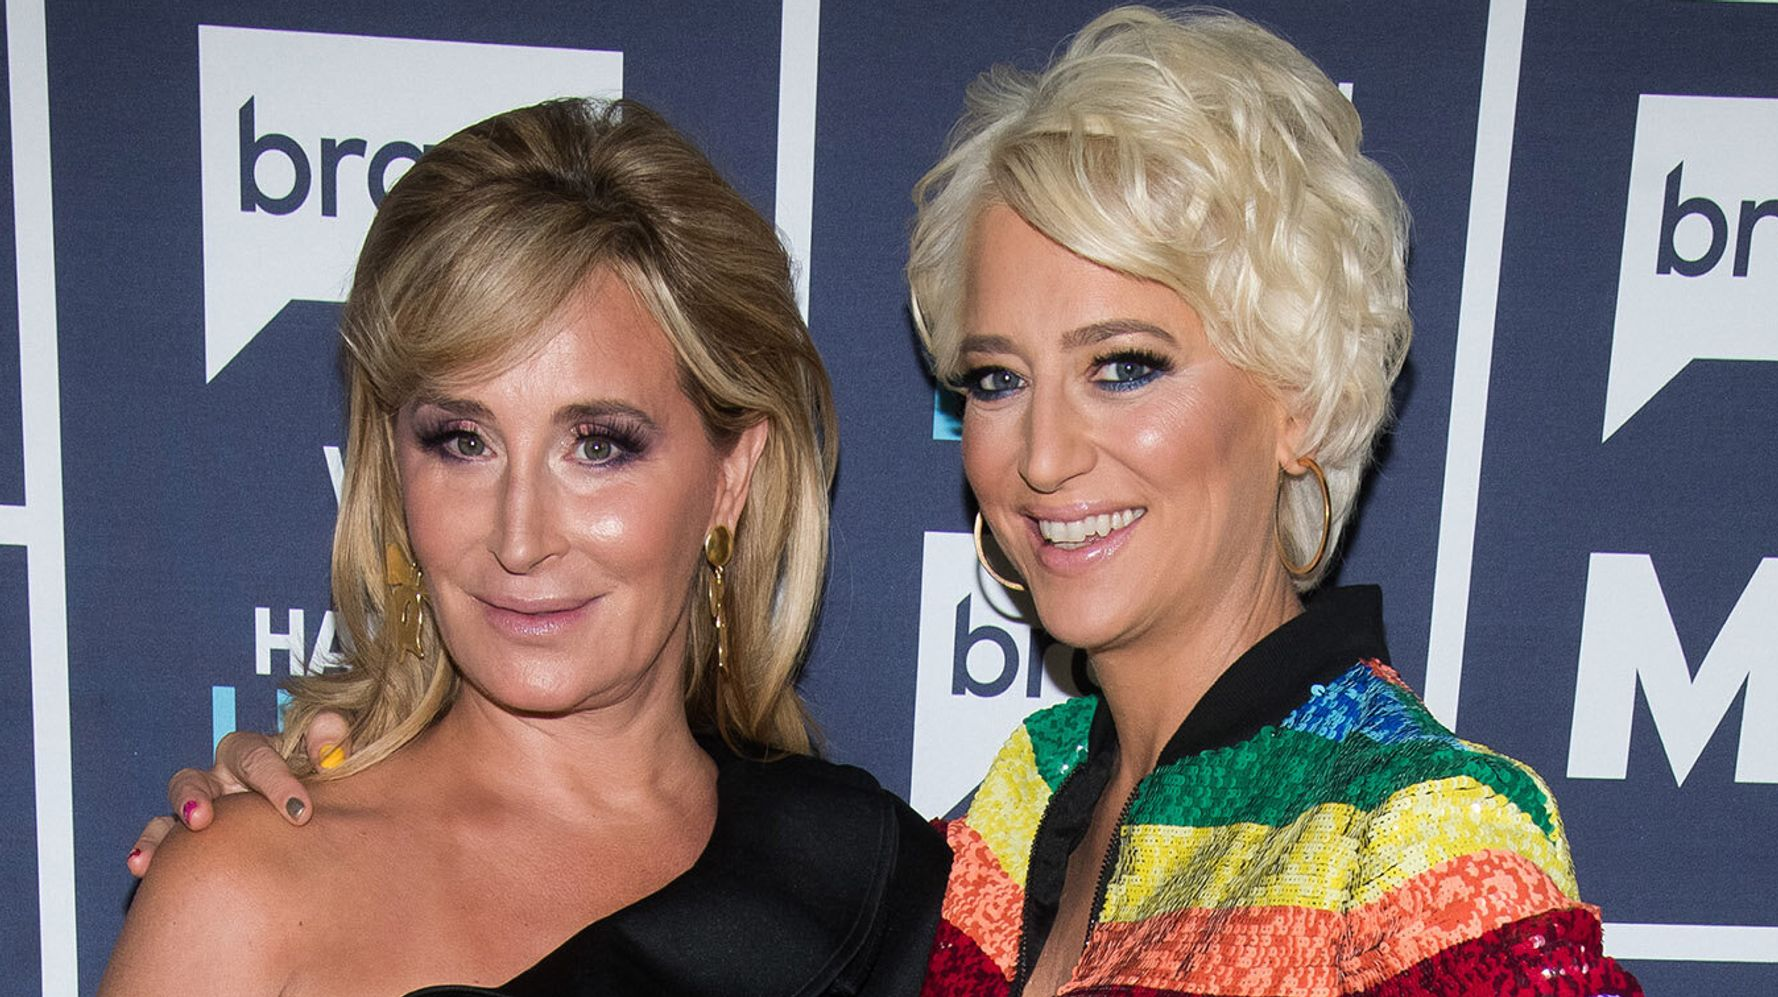 'Real Housewives' Stars Apologize For Transphobic Remarks About Model